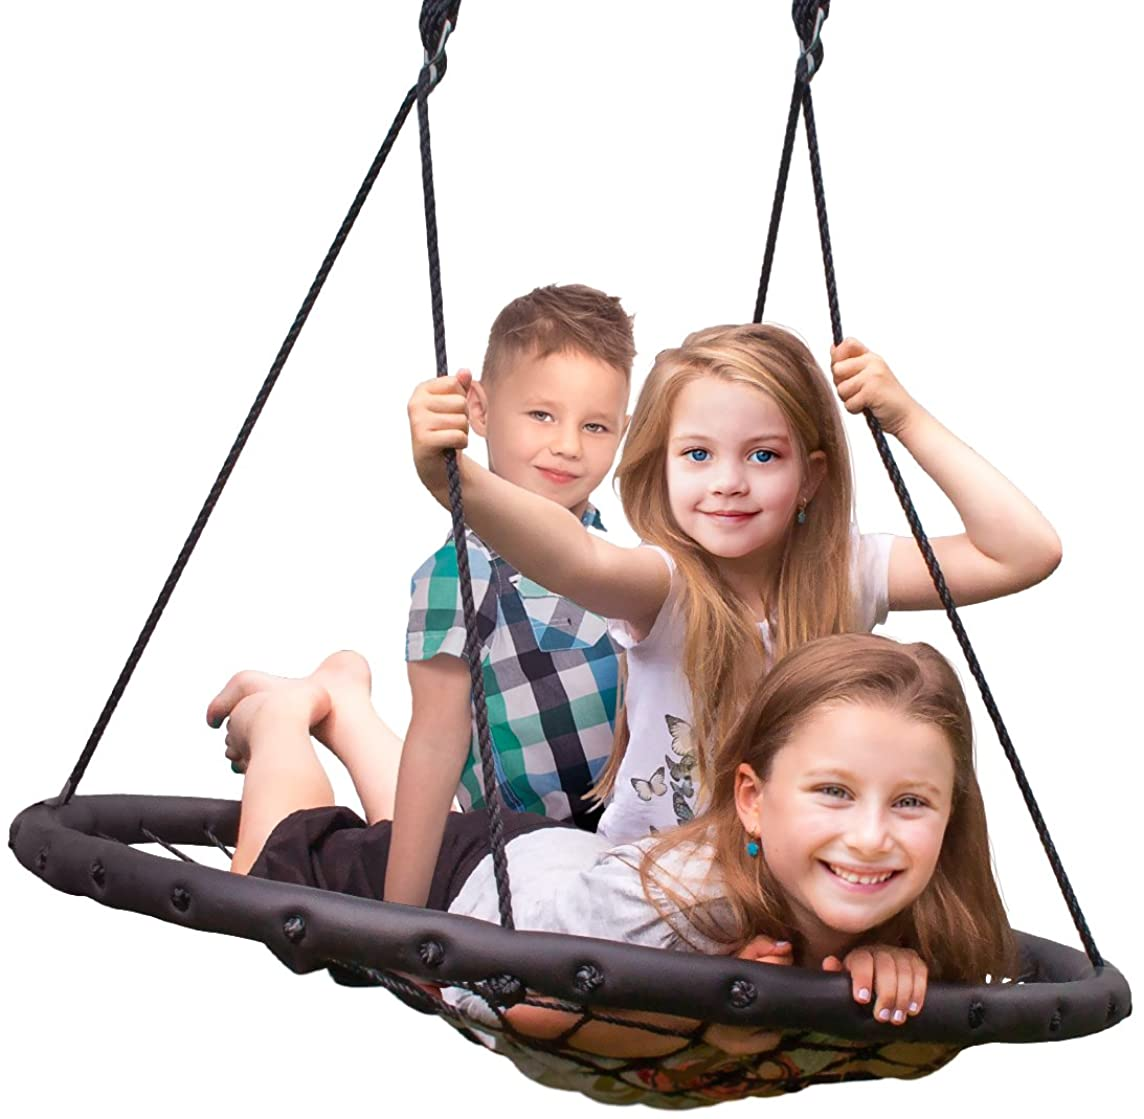 Sorbus Spinner Swing – Kids Indoor/Outdoor Round Web Swing – Great for Tree, Swing Set, Backyard, Playground, Playroom – Accessories Included (40